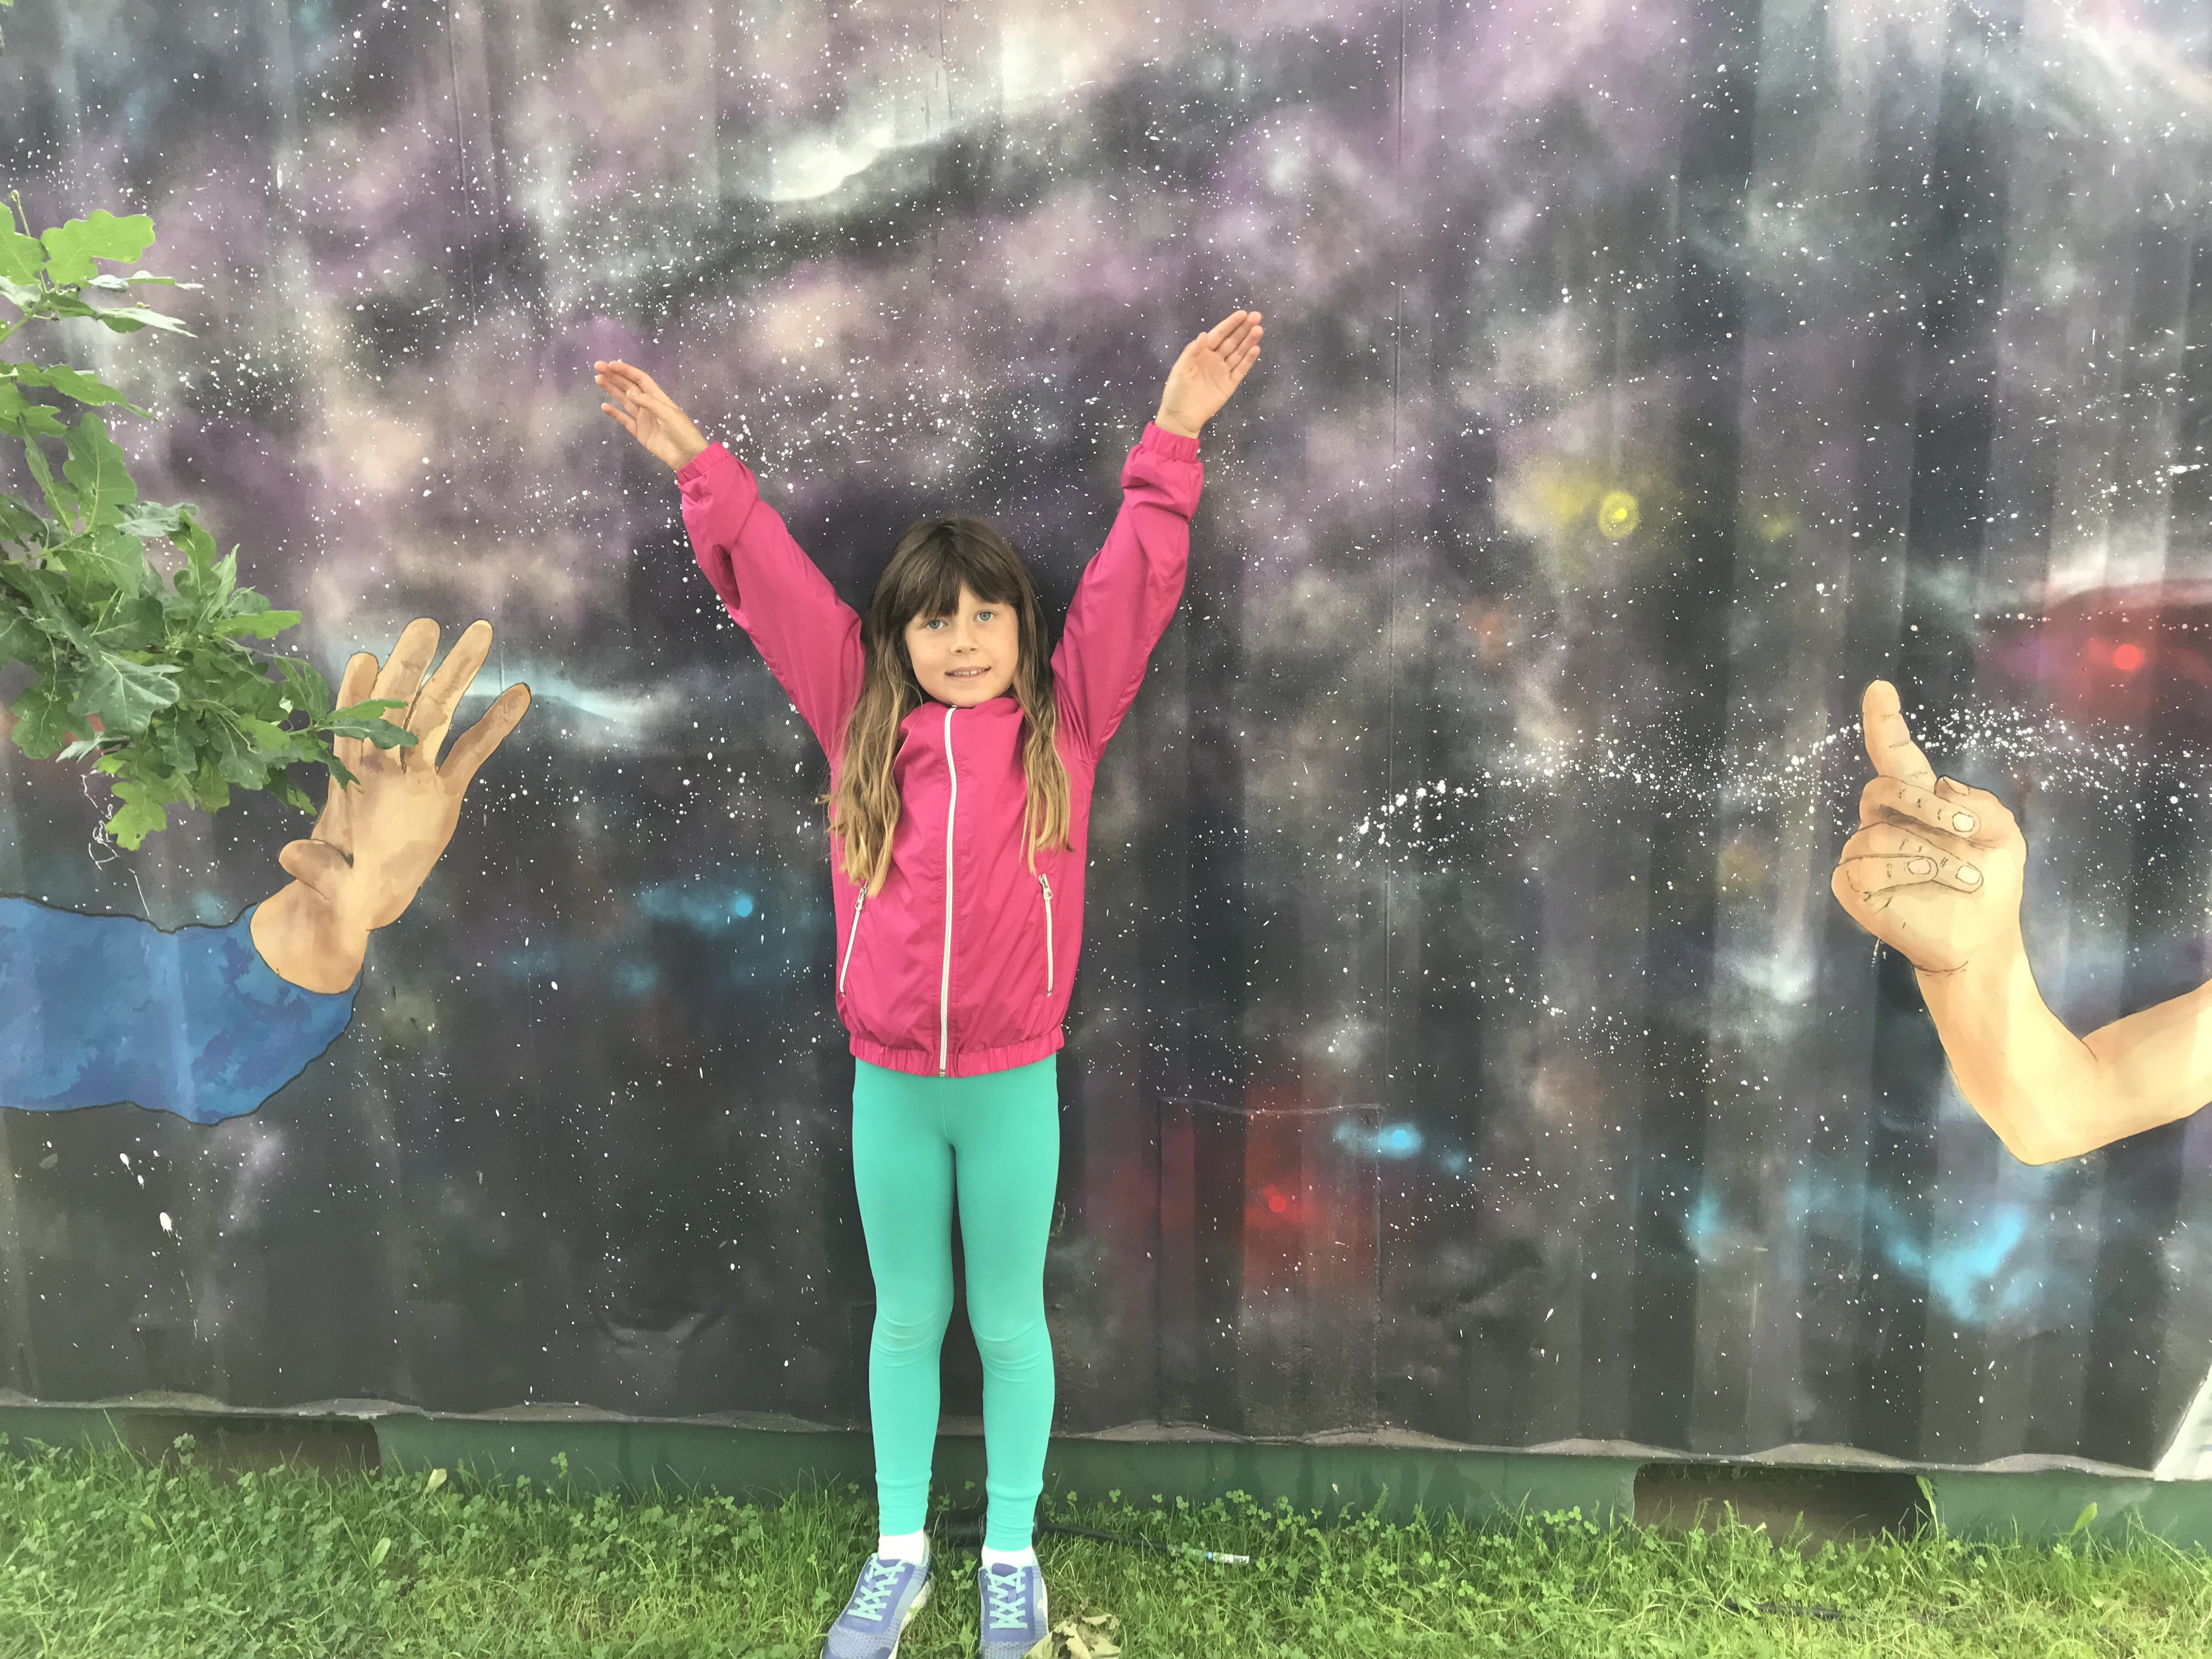 This is my daughter standing in front of a big metal shipping container which has been graffitied with a solar system. We were visiting a science festival.